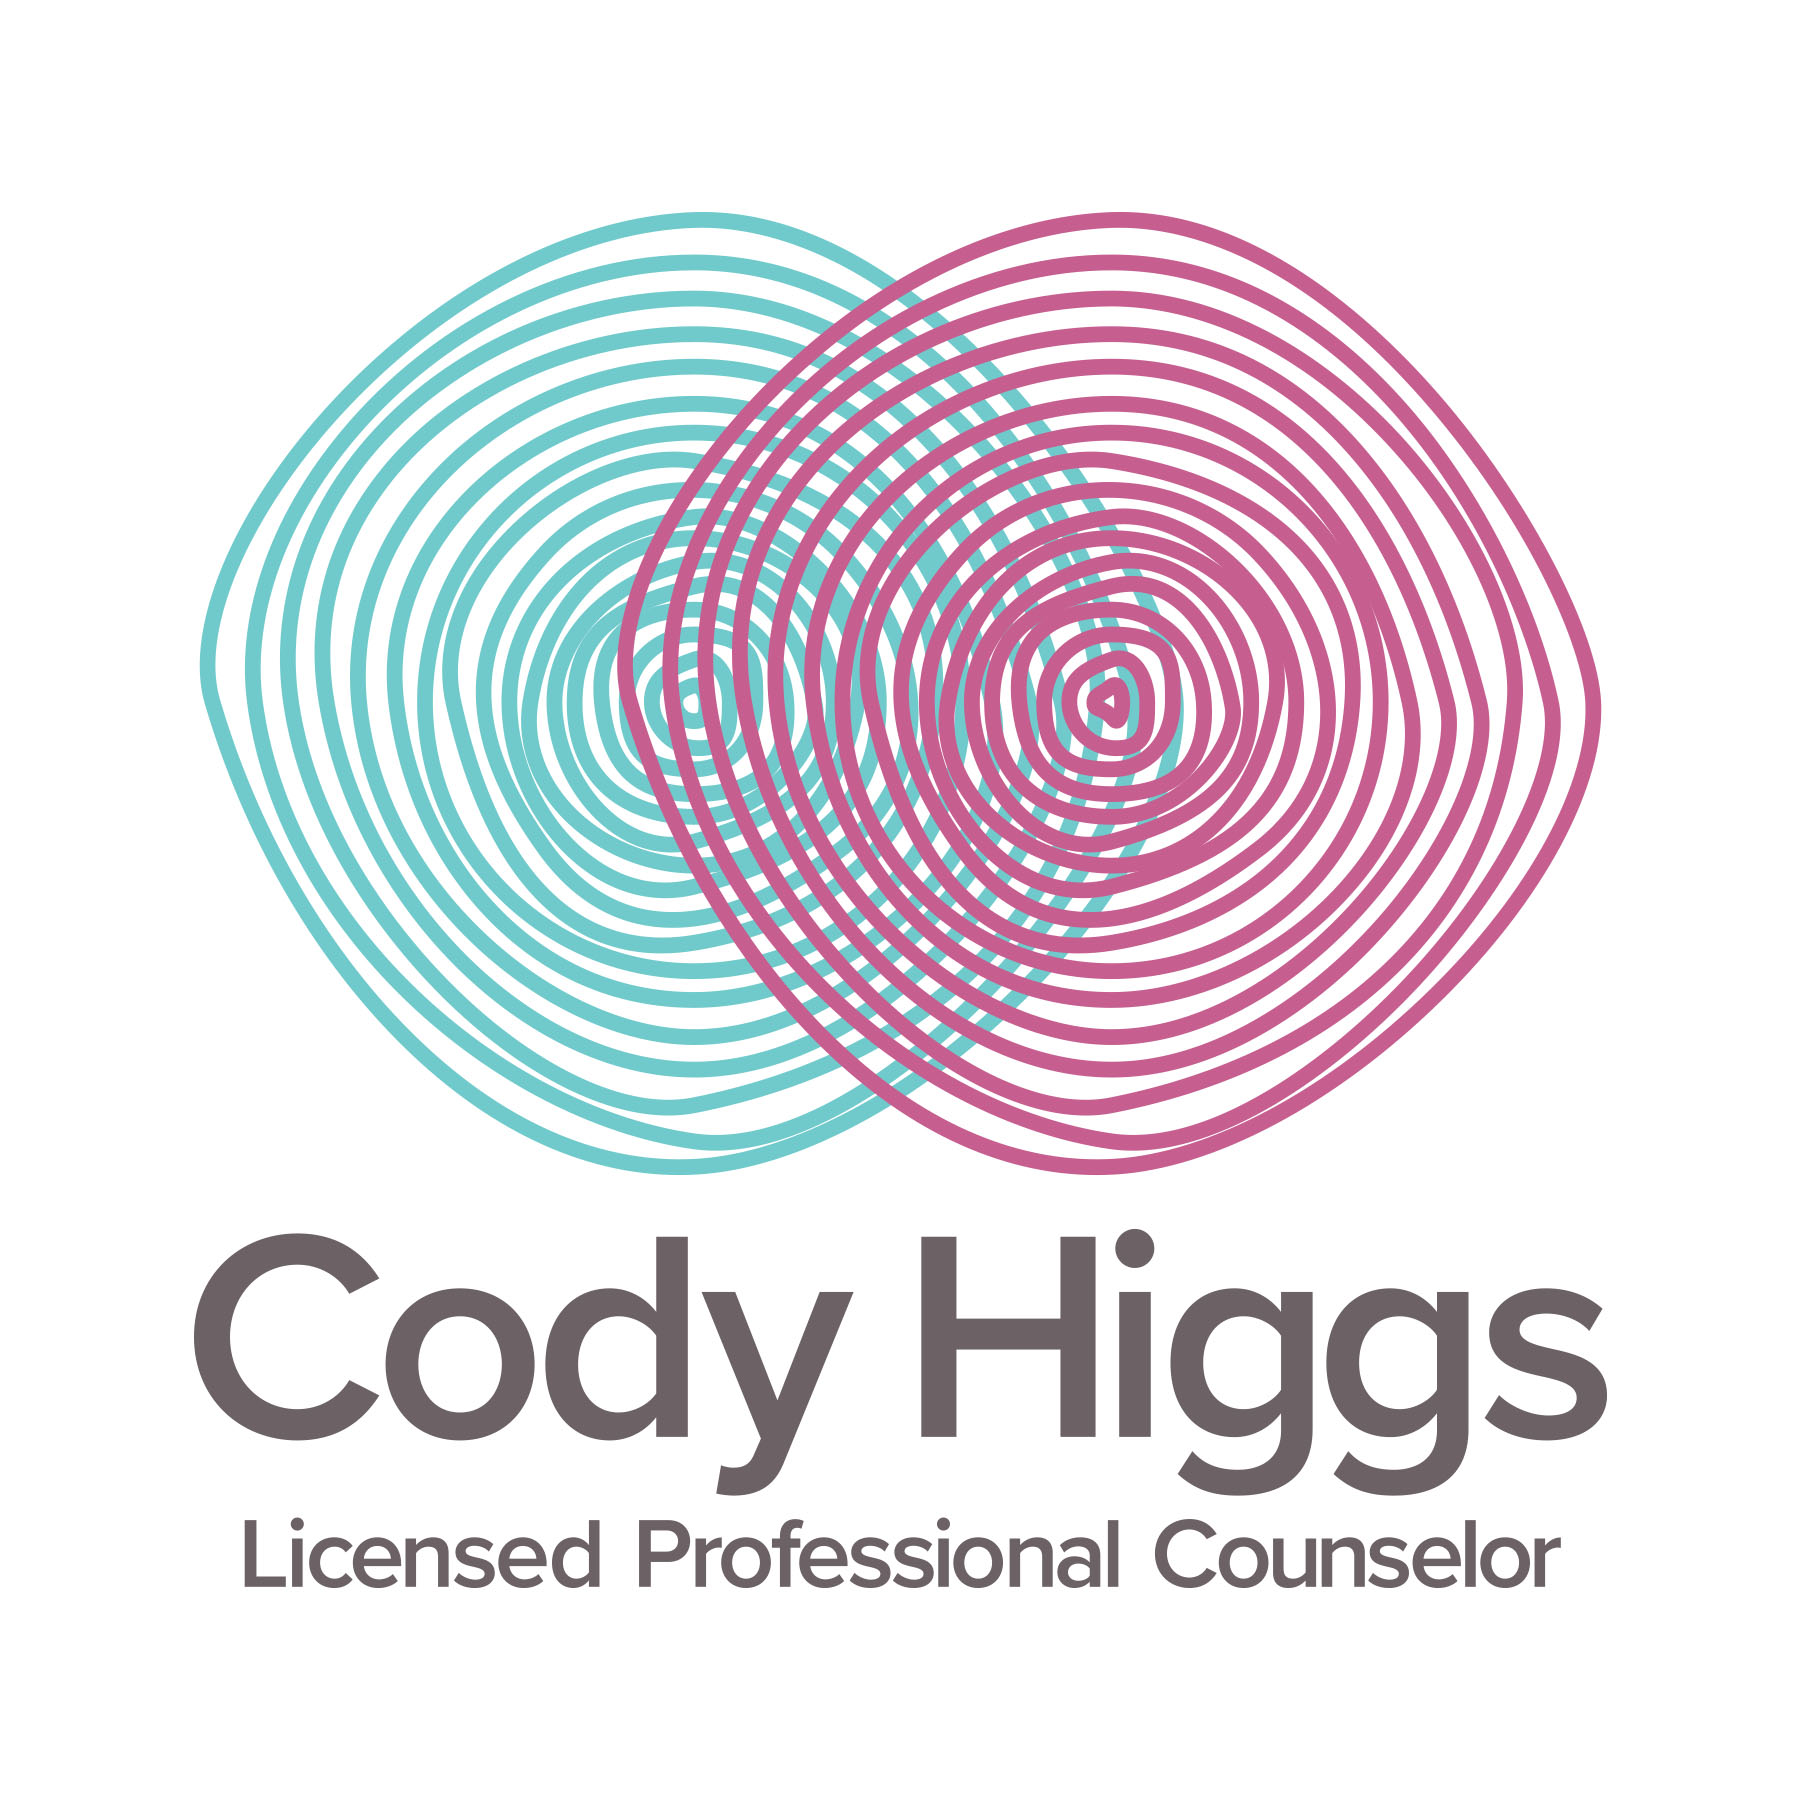 anxiety therapist Cody higgs offers counseling in Franklin, TN for teens and young adults and LGTBQ+ folx 37067